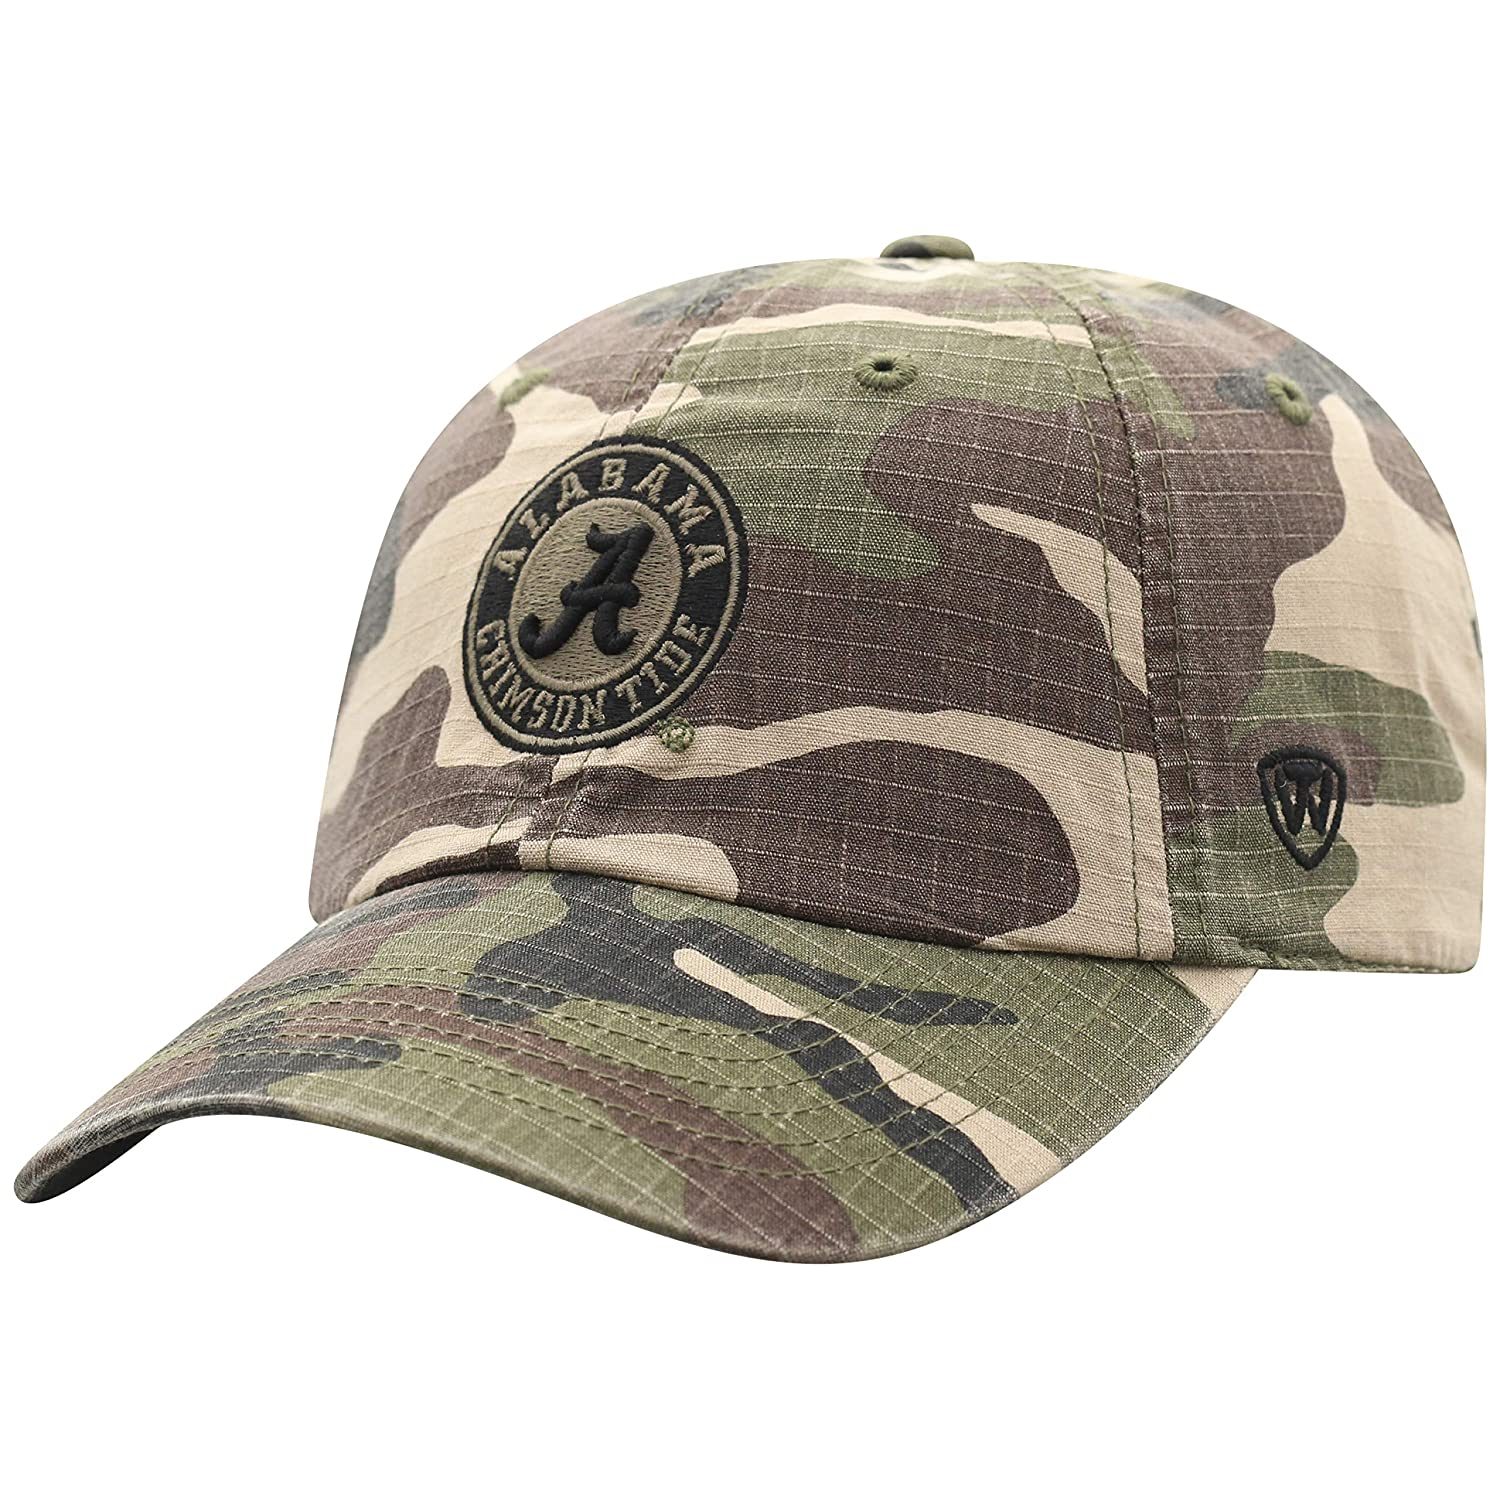 super popular d2a73 03b67 Amazon.com   Top of the World Alabama Crimson Tide Men s Camo Hat Icon,  Camo, Adjustable   Clothing